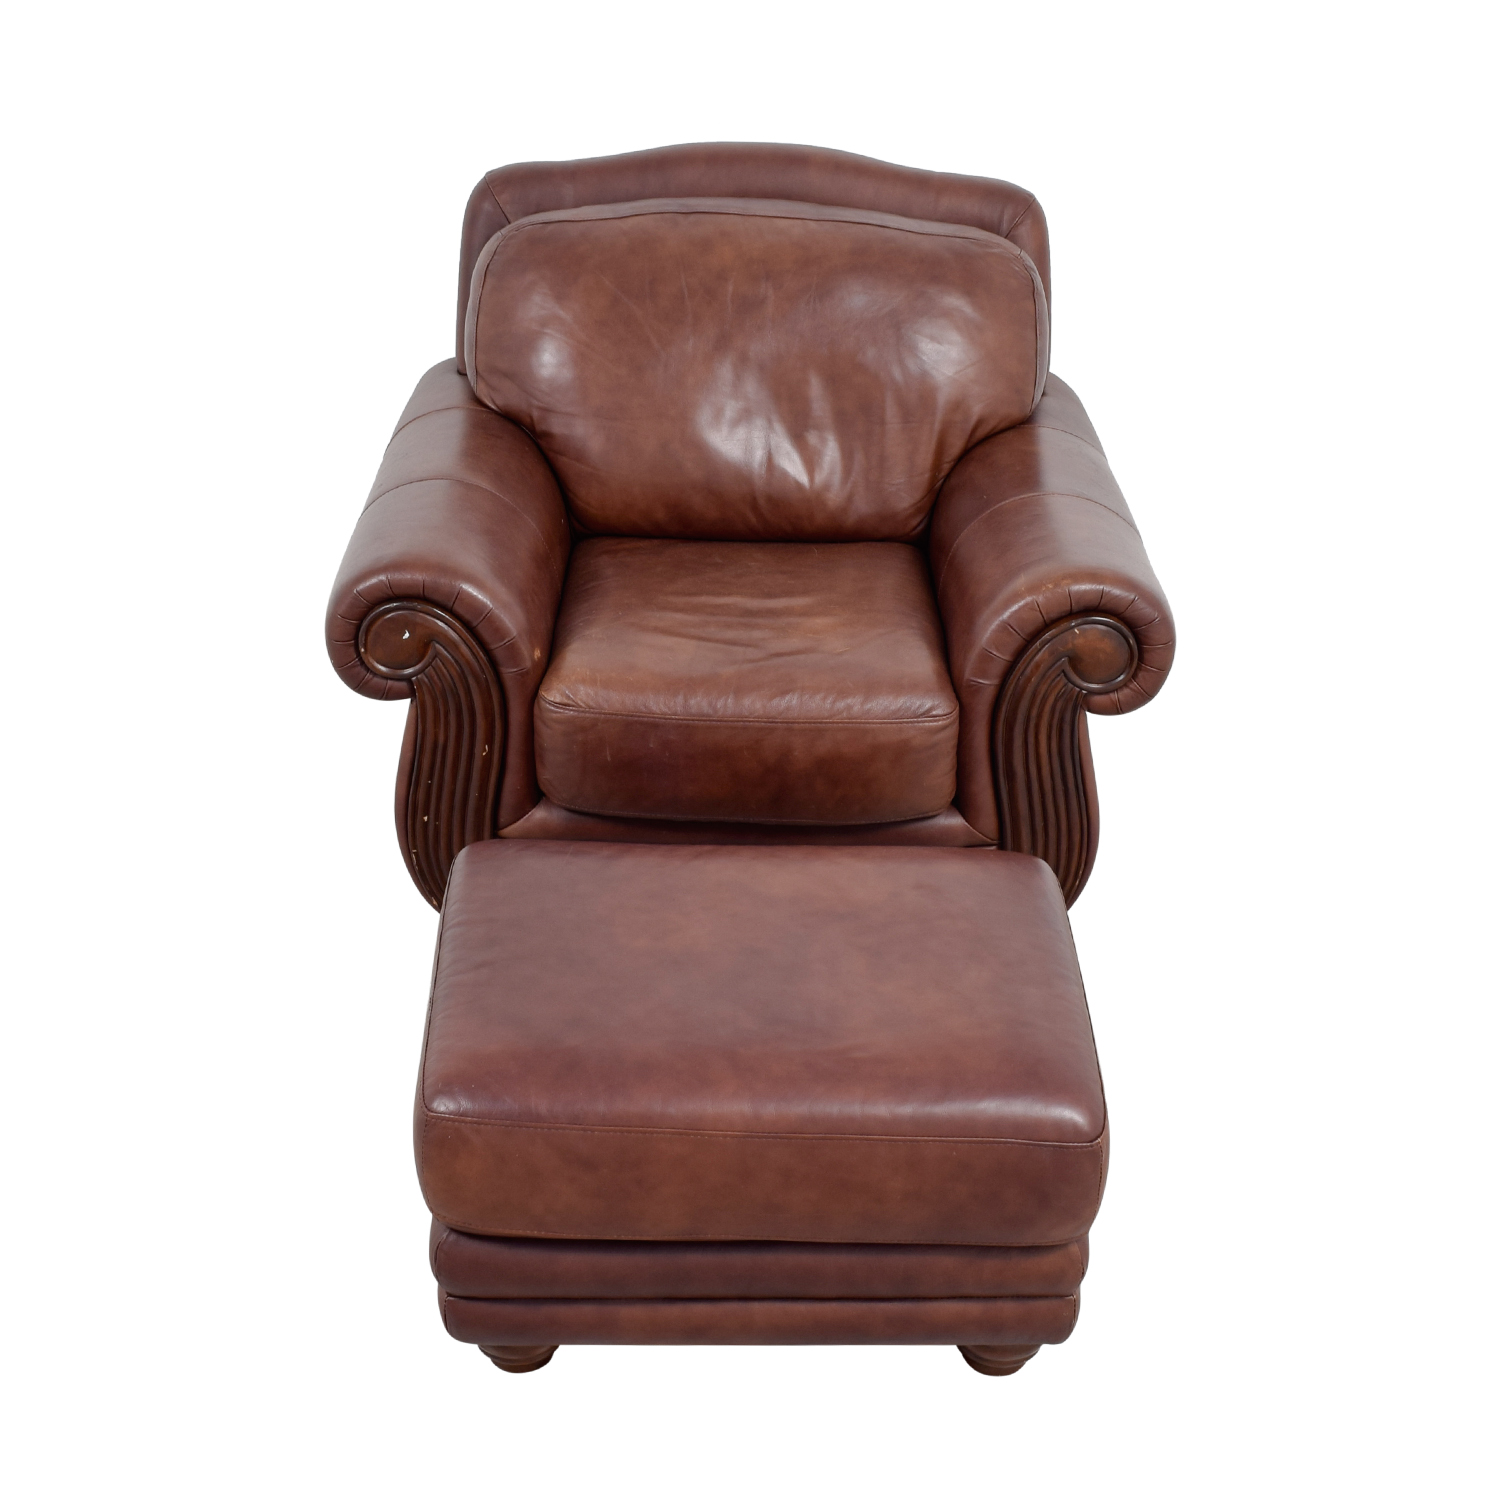 Leather Chair And Ottoman Rooms To Go Brown Leather Chair And Ottoman